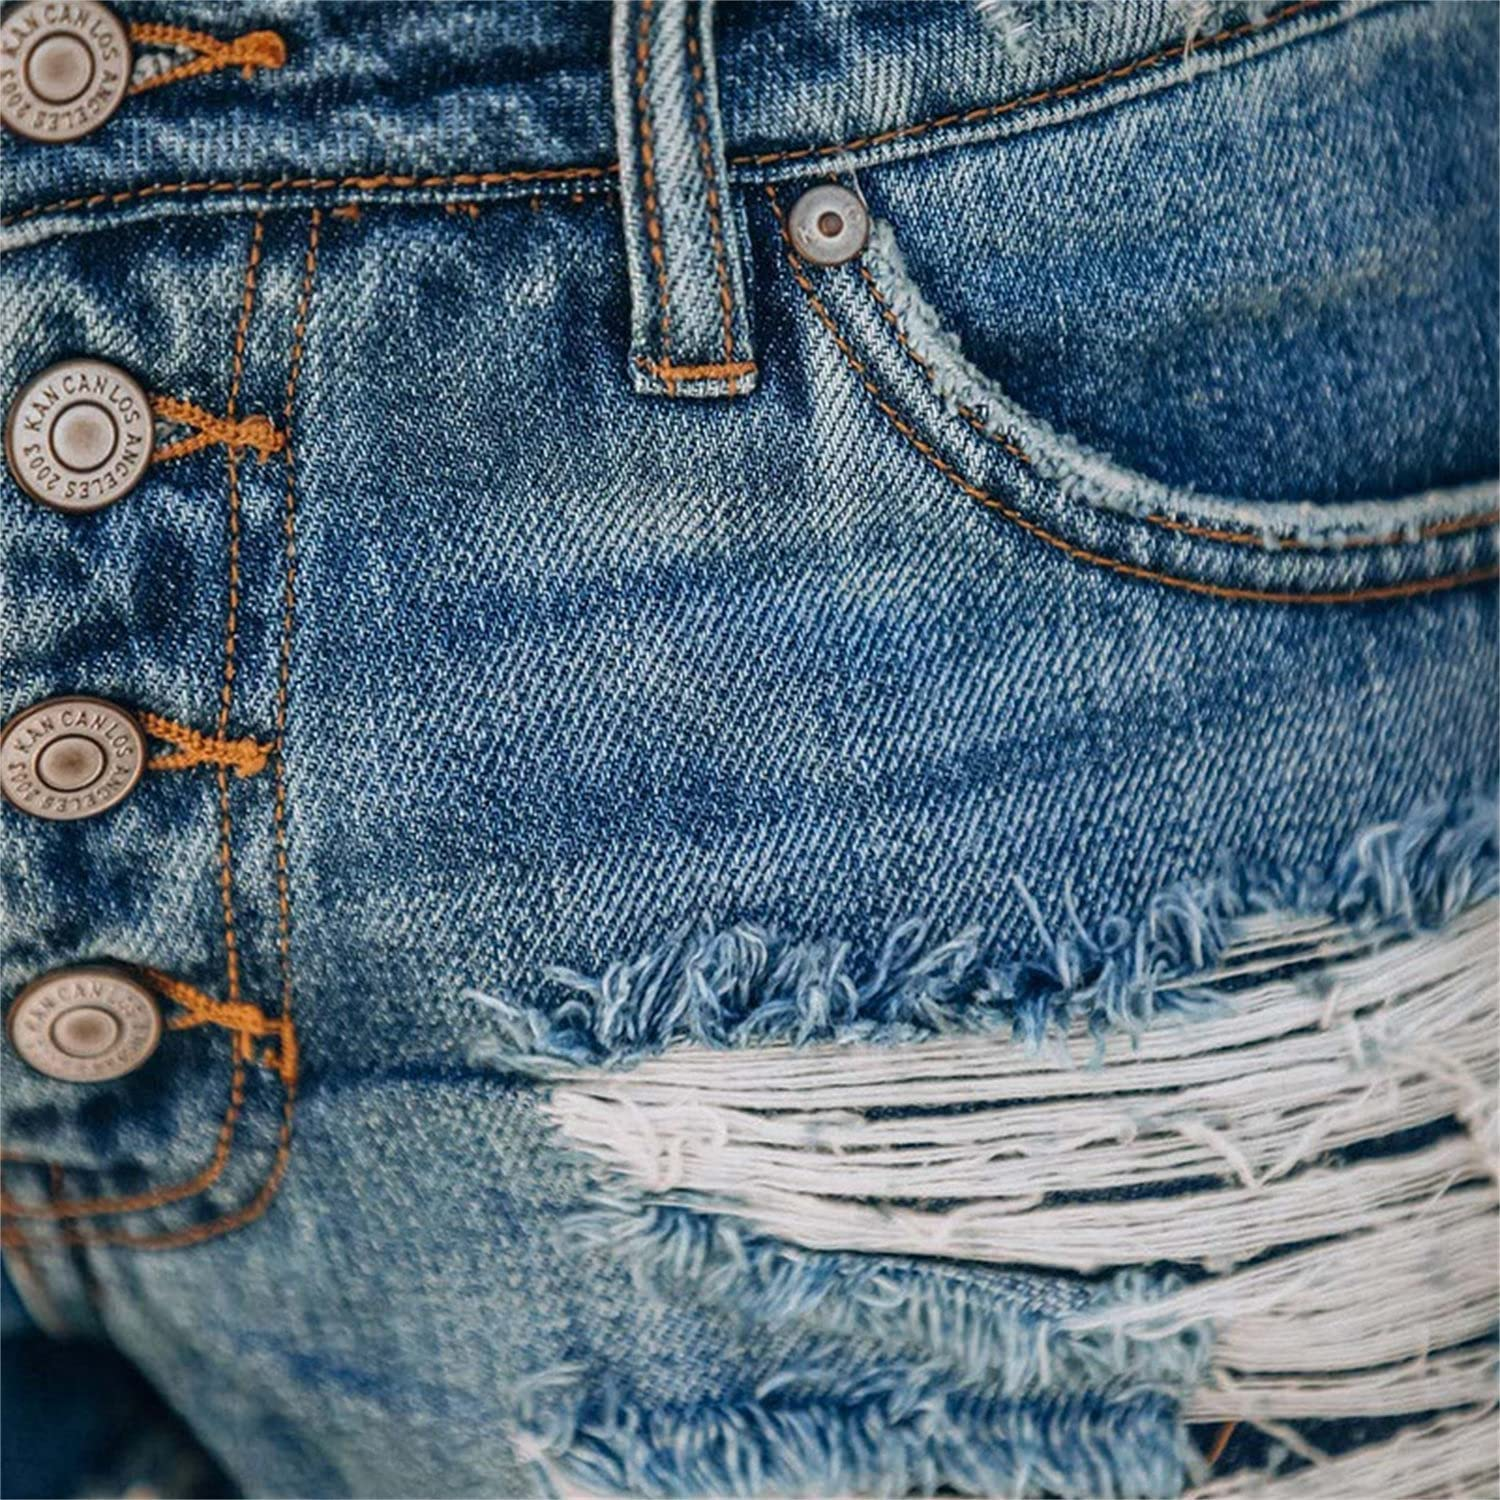 Women's Button Ripped Denim Shorts Frayed Pocket Print Patchwork Jean Shorts Casual Raw Hem Destroyed Short Jeans